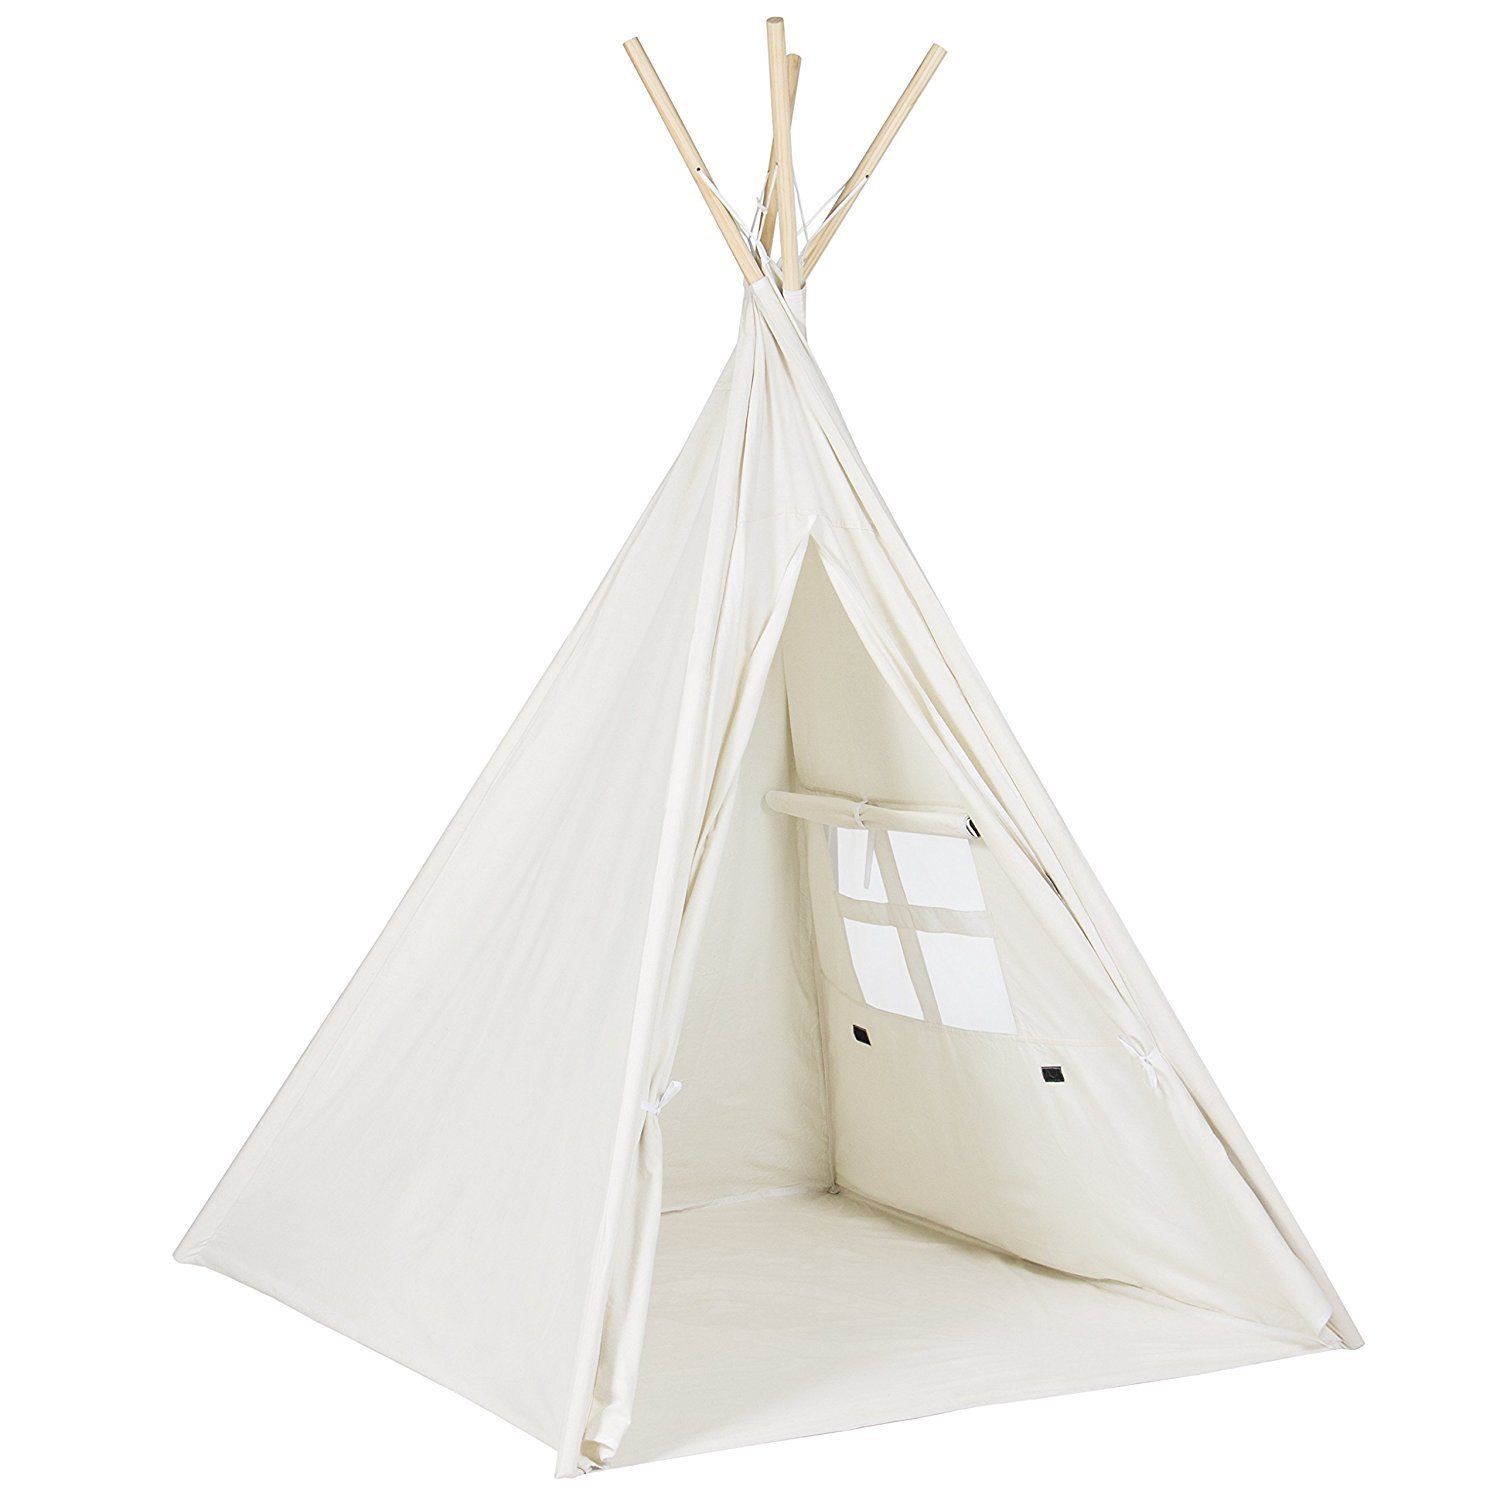 Porpora Indoor Indian Playhouse Toy Teepee Play Tent for Kids Toddlers Canvas with Carry Case, Off White